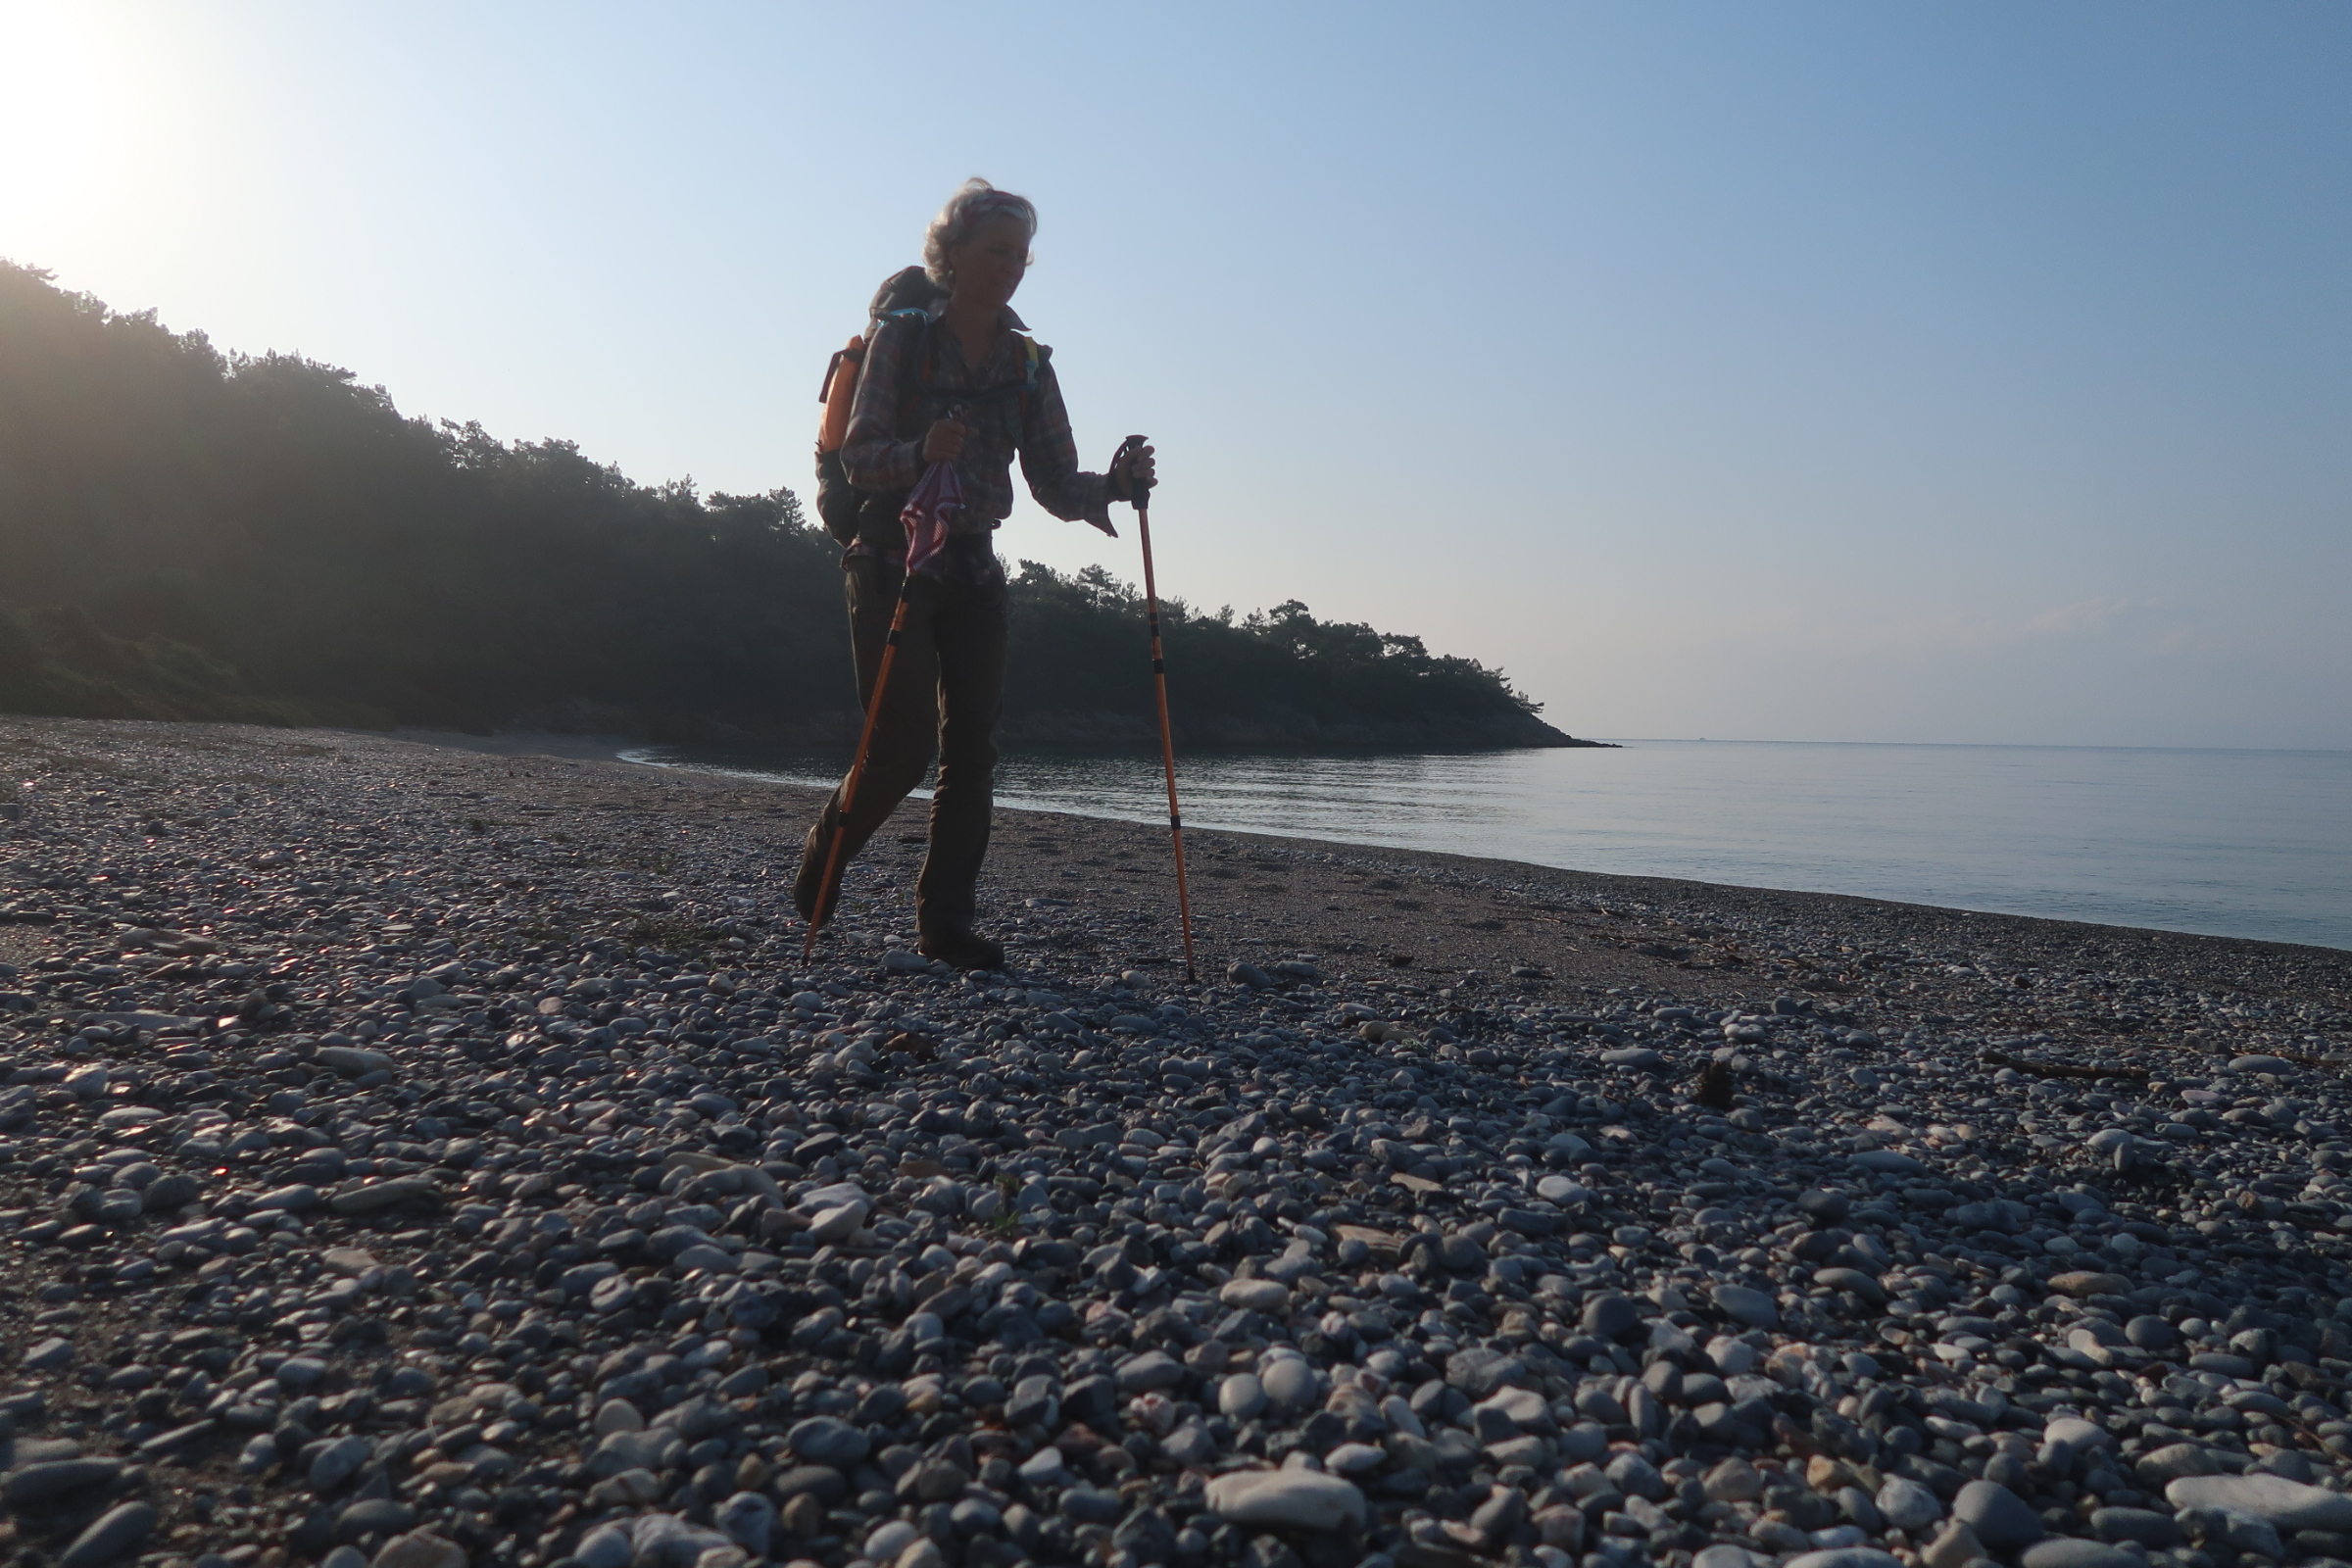 Slow hiking the Ceramic Gulf in Turkey - following the coast on the beach